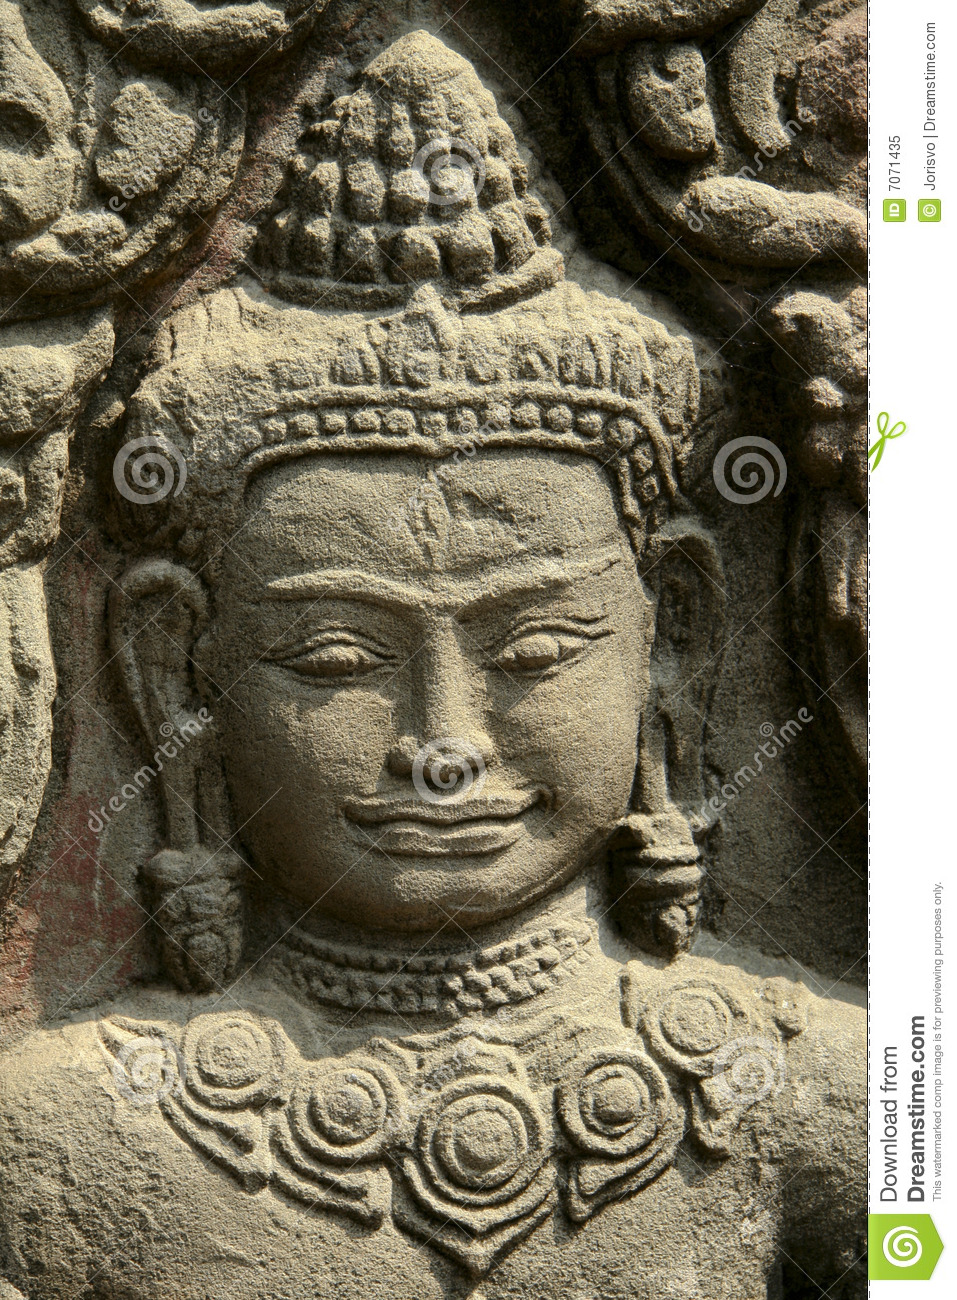 Stone carving in angkor wat temple royalty free stock